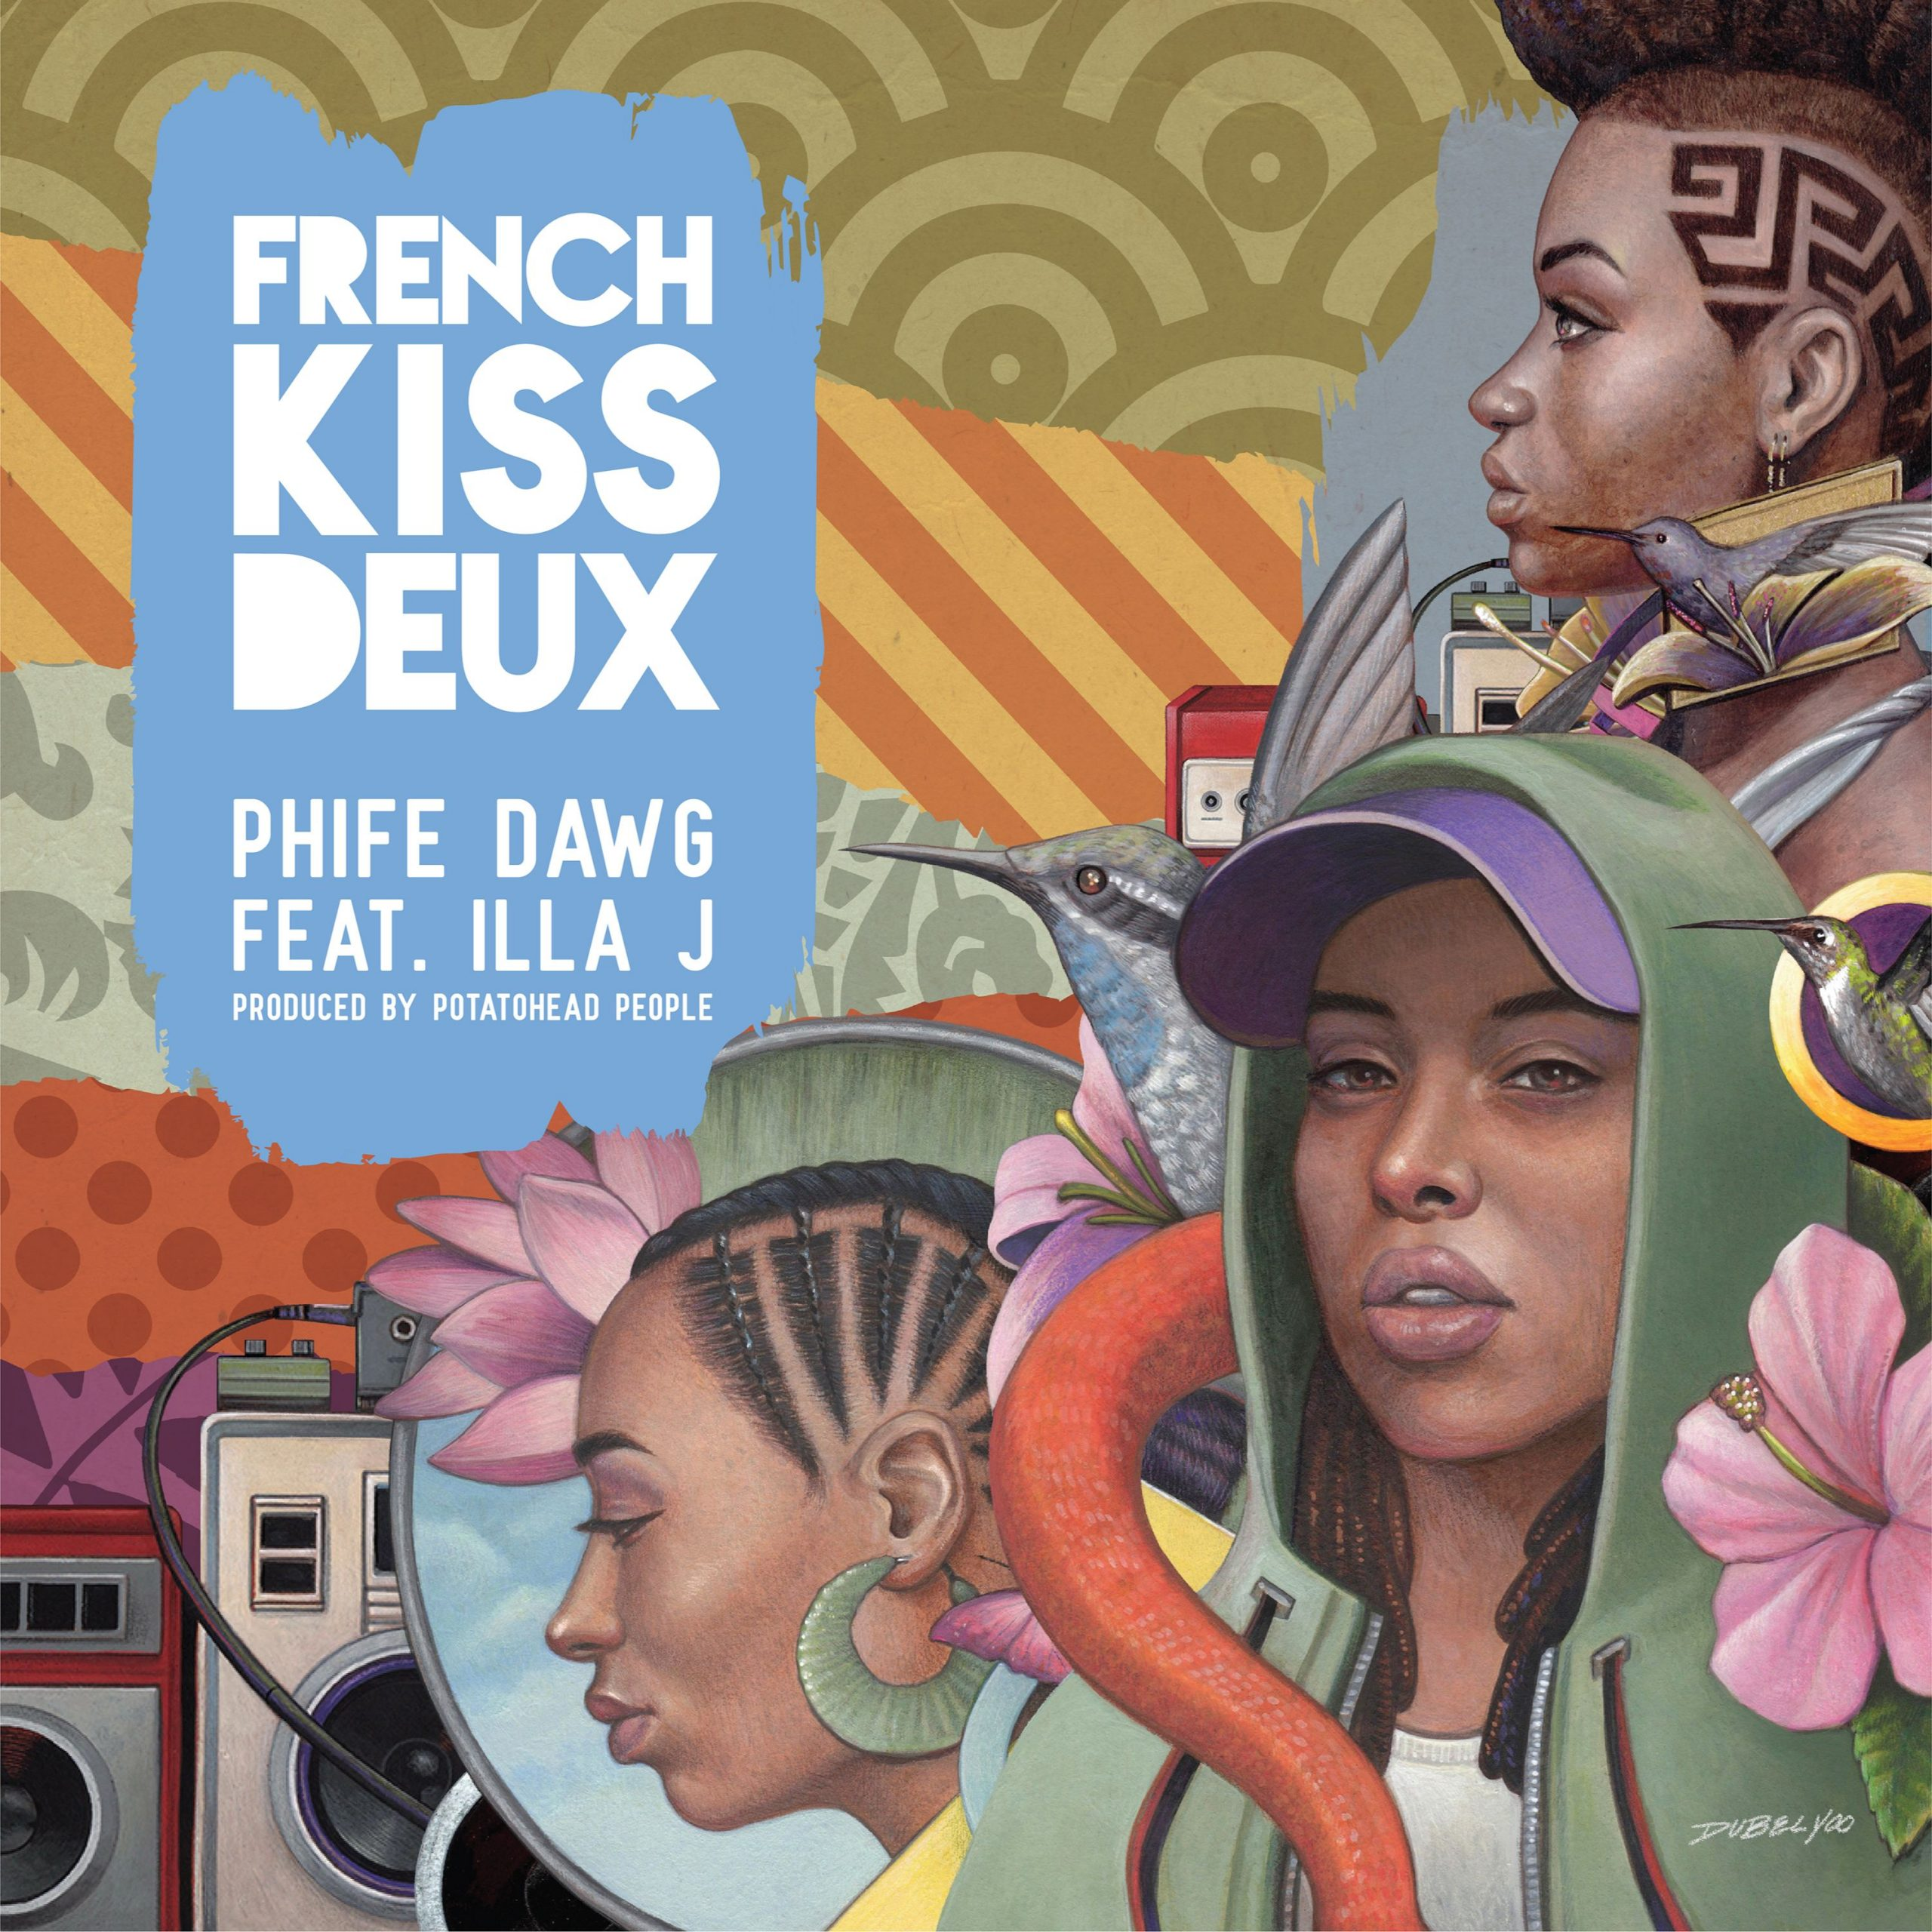 DOWNLOAD MP3: Phife Dawg Ft. Illa J – French Kiss Deux